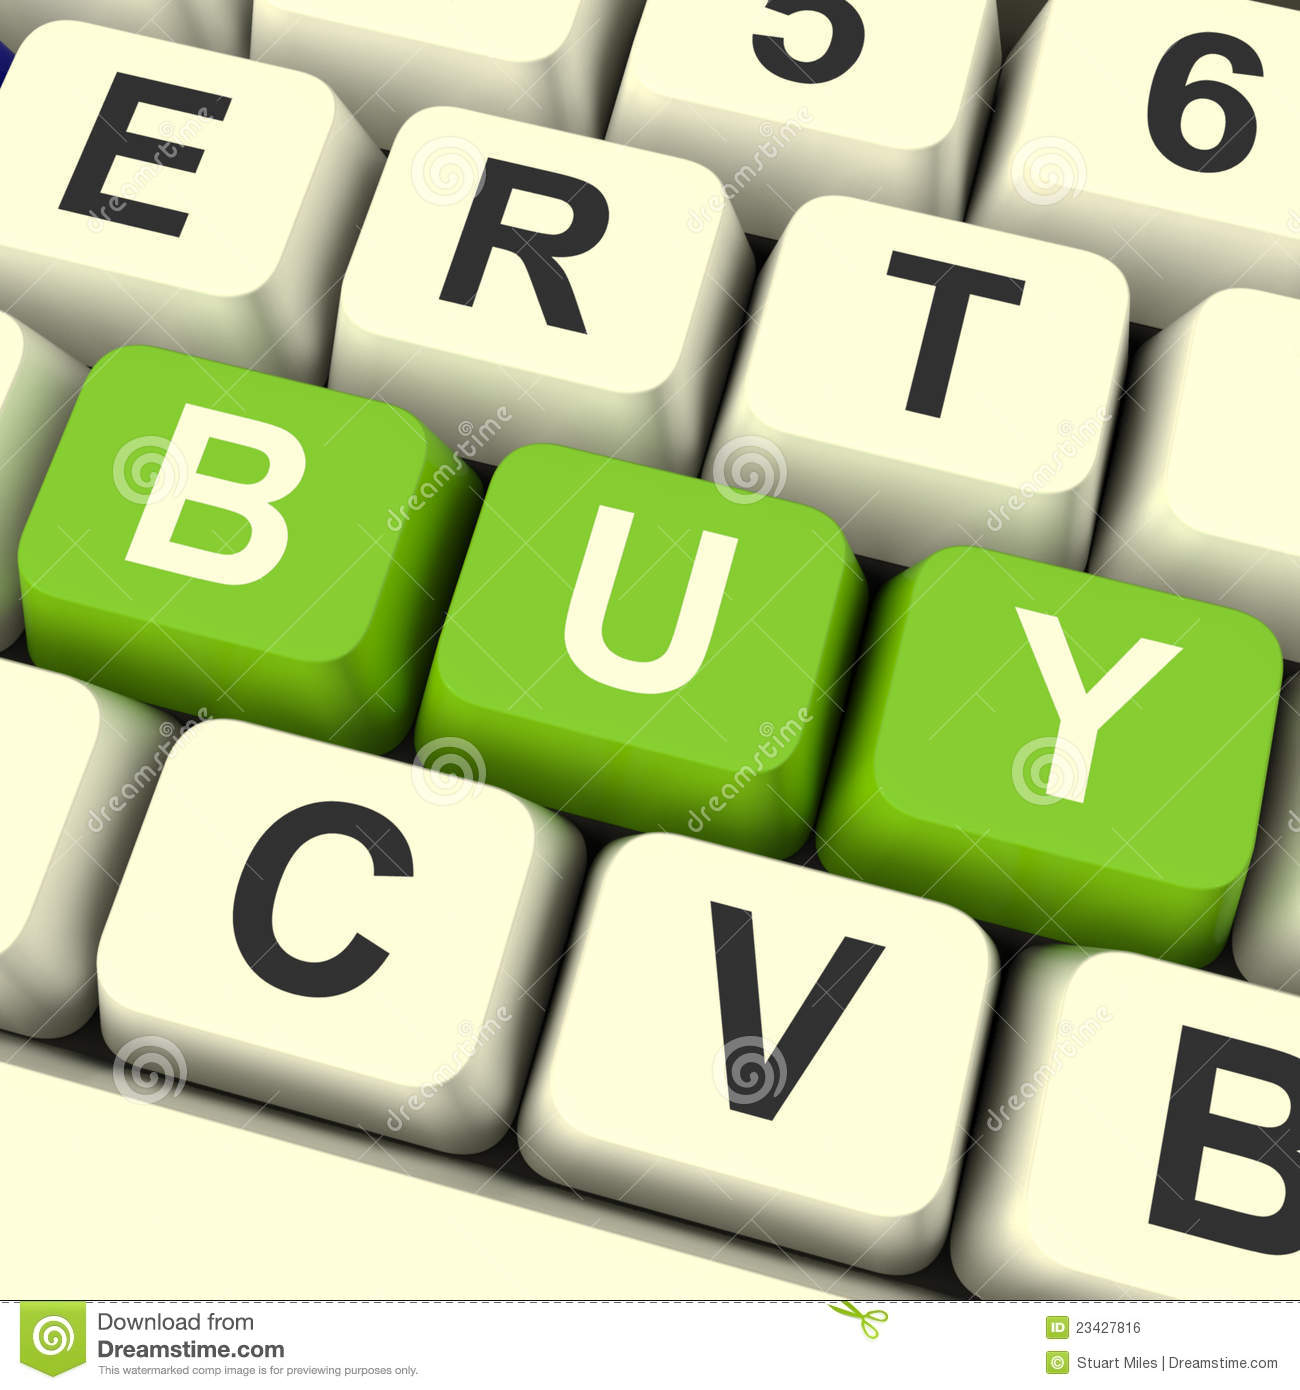 buy keys as symbol for commerce and purchasing royalty free stock